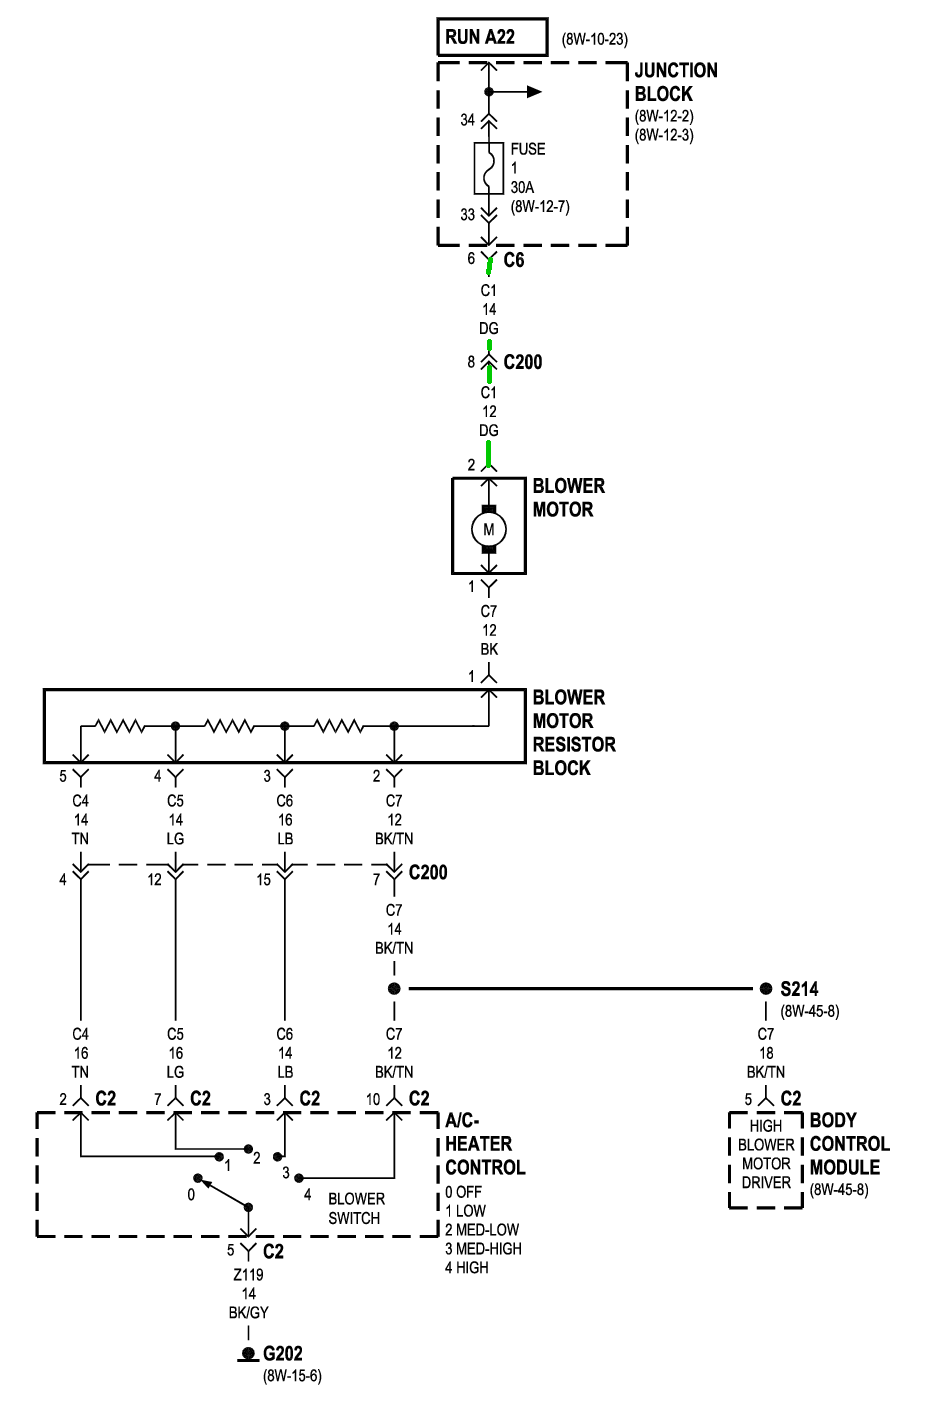 05 Chrysler Town And Country Fuse Box Diagram | Wiring Library